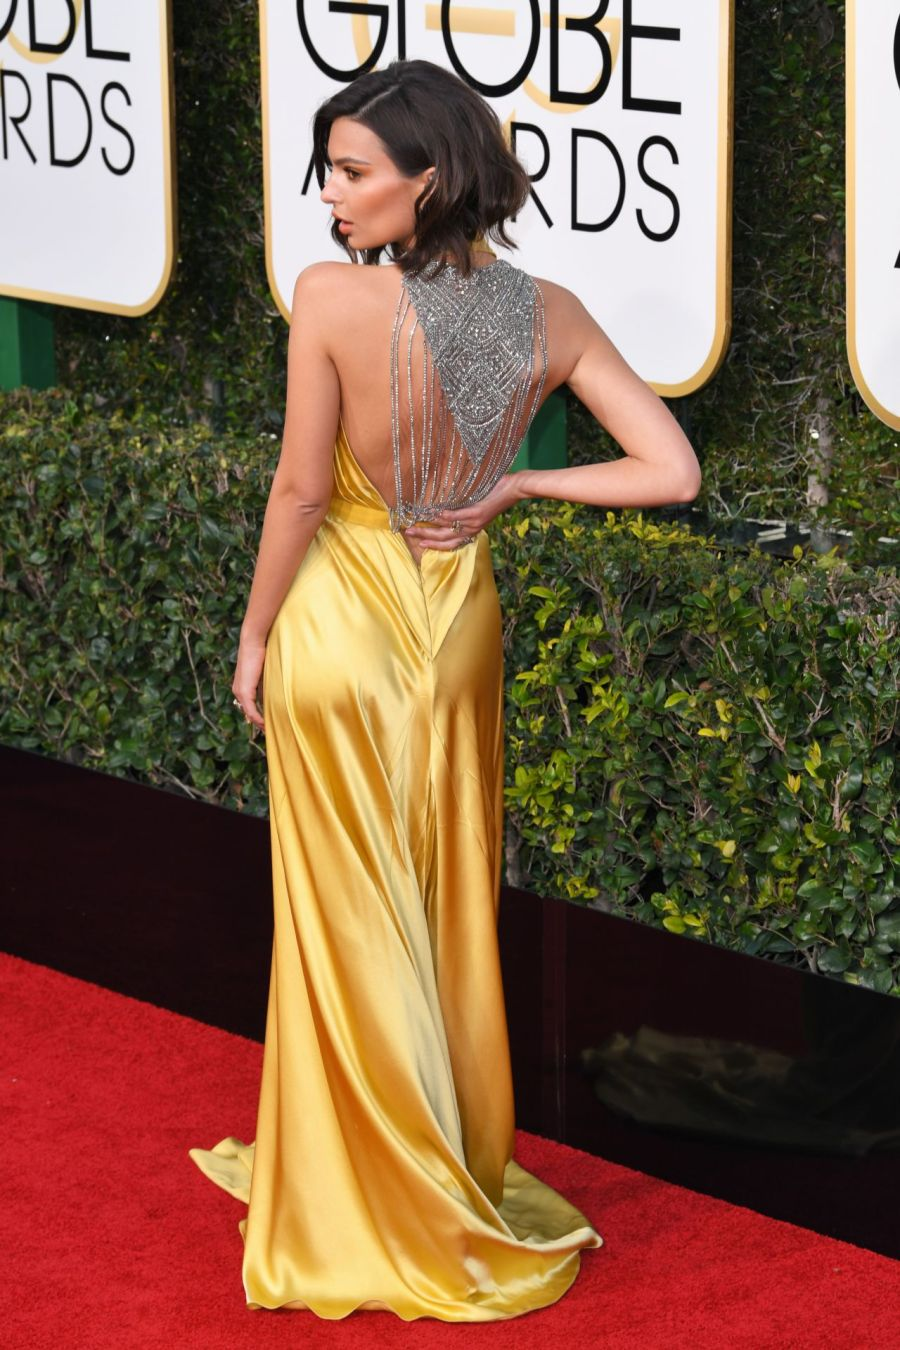 emily-ratajkowski-in-reem-acra-at-2017-golden-globe-awards-in-beverly-hills.7.jpg